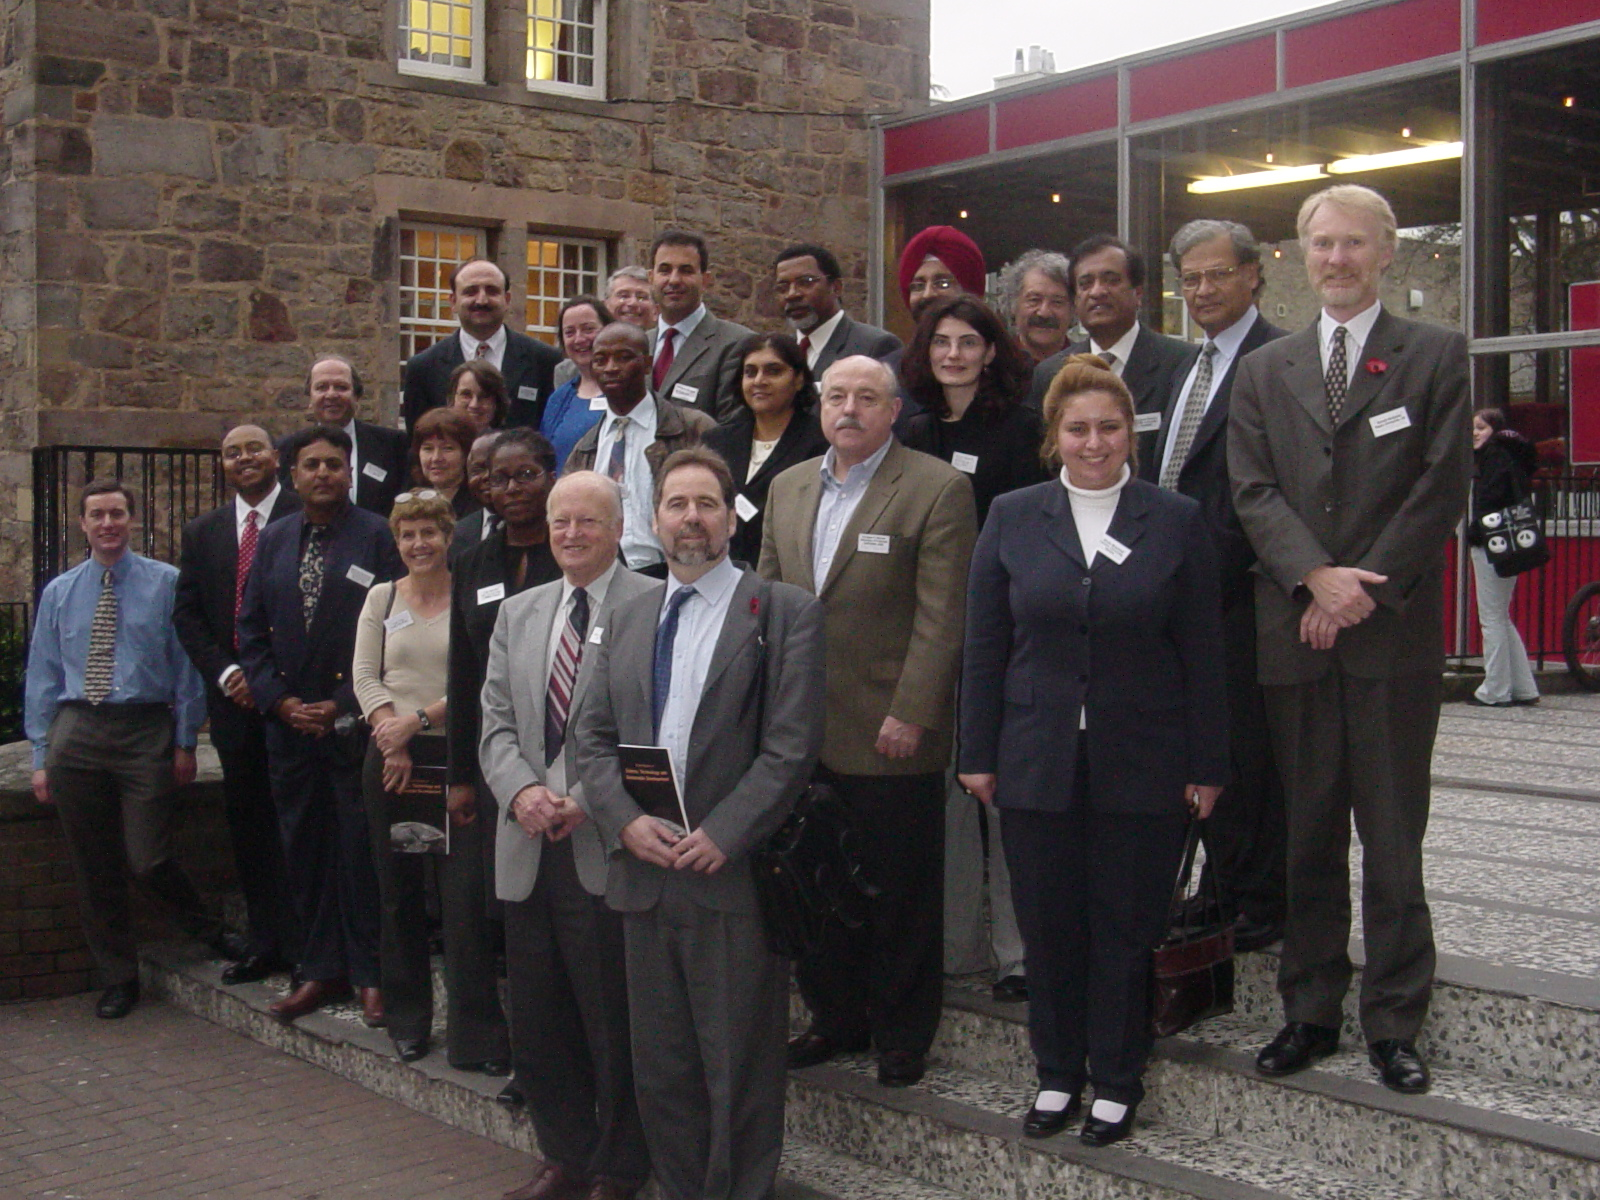 2nd Sustainability Conference, Edinburgh, UK 2004<div style='clear:both;width:100%;height:0px;'></div><span class='cat'>Sustainability Conferences</span>